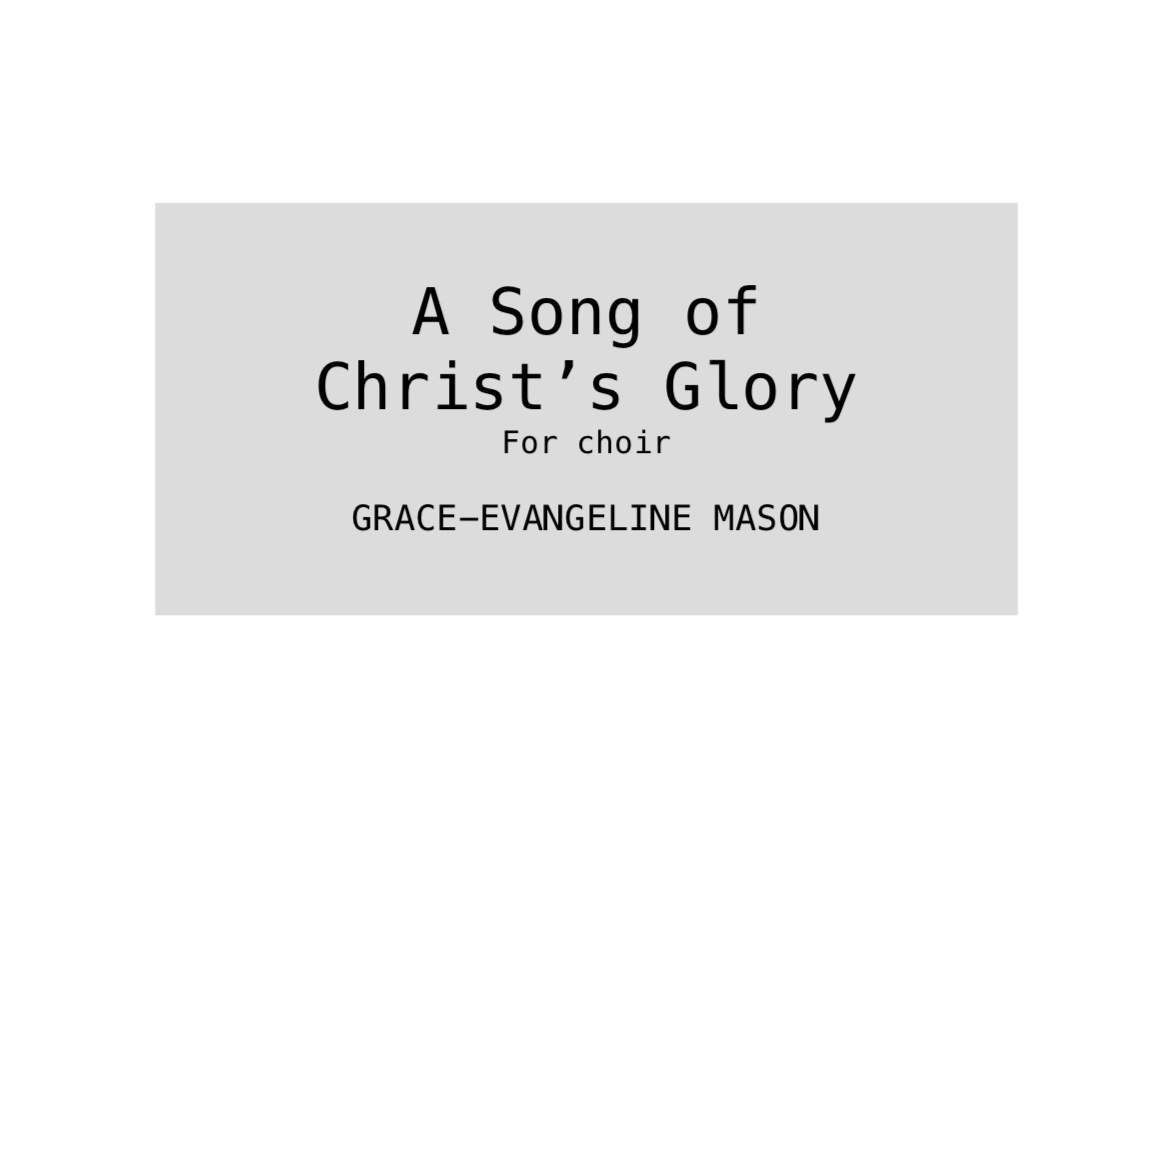 A Song of Christ's Glory (2019)